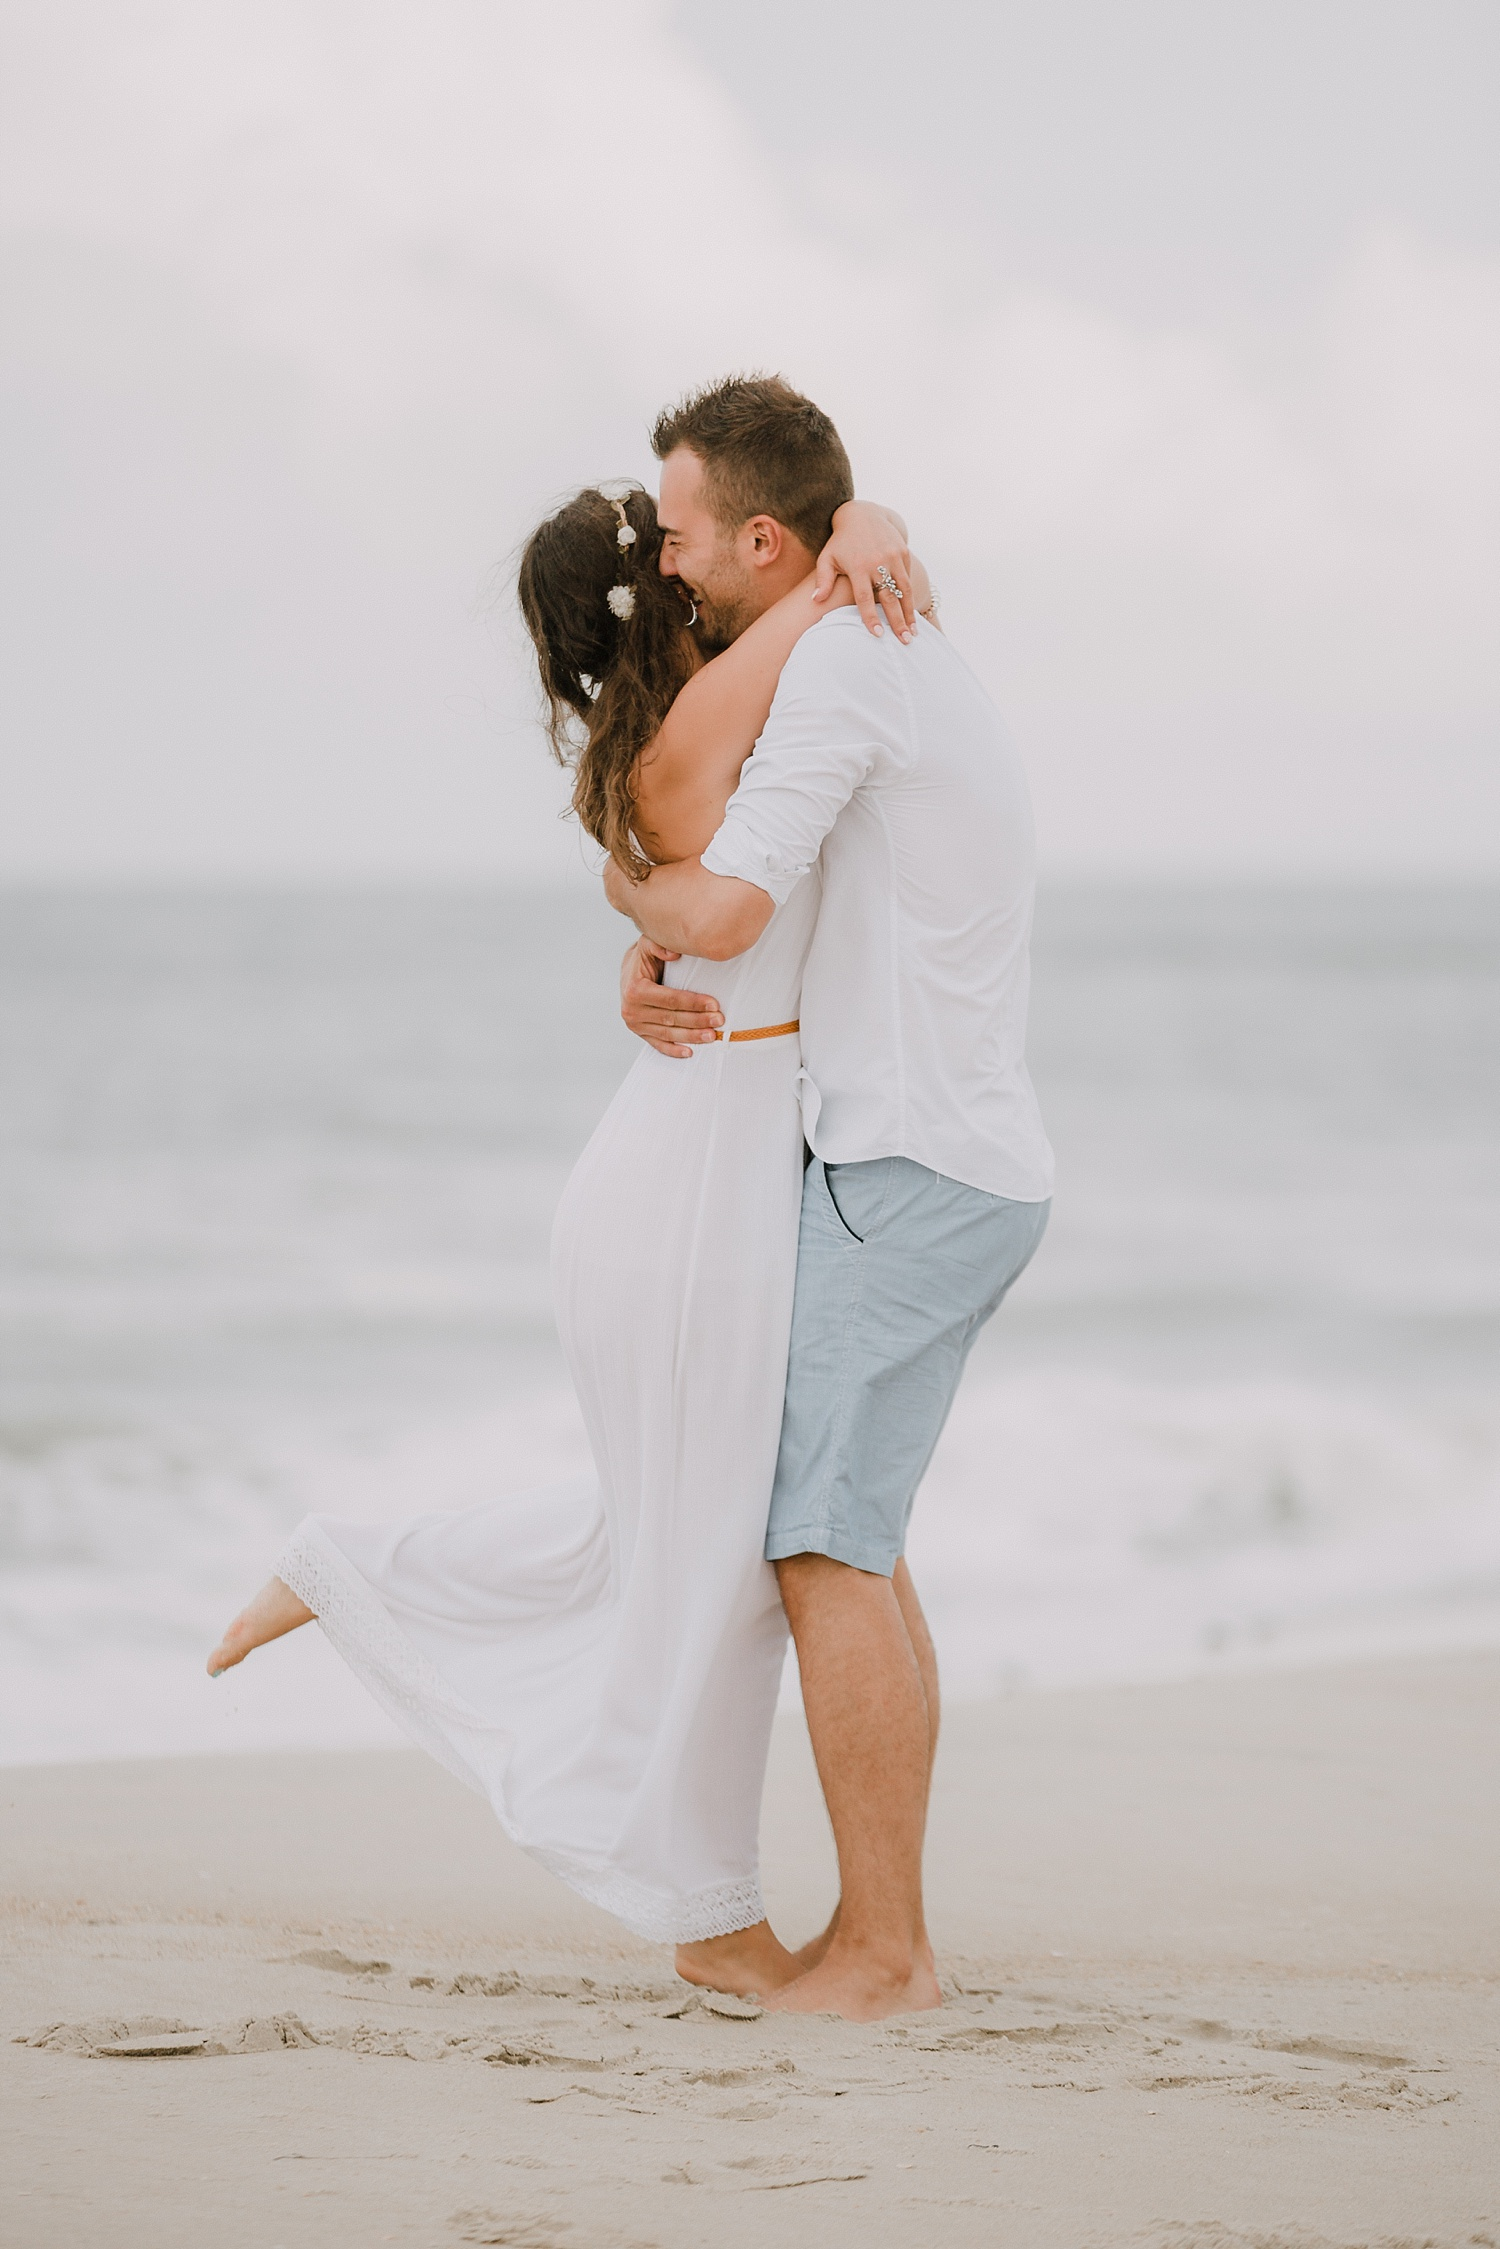 Rodanthe Outer Banks North Carolina NC surprise proposal engagement beach photographer session